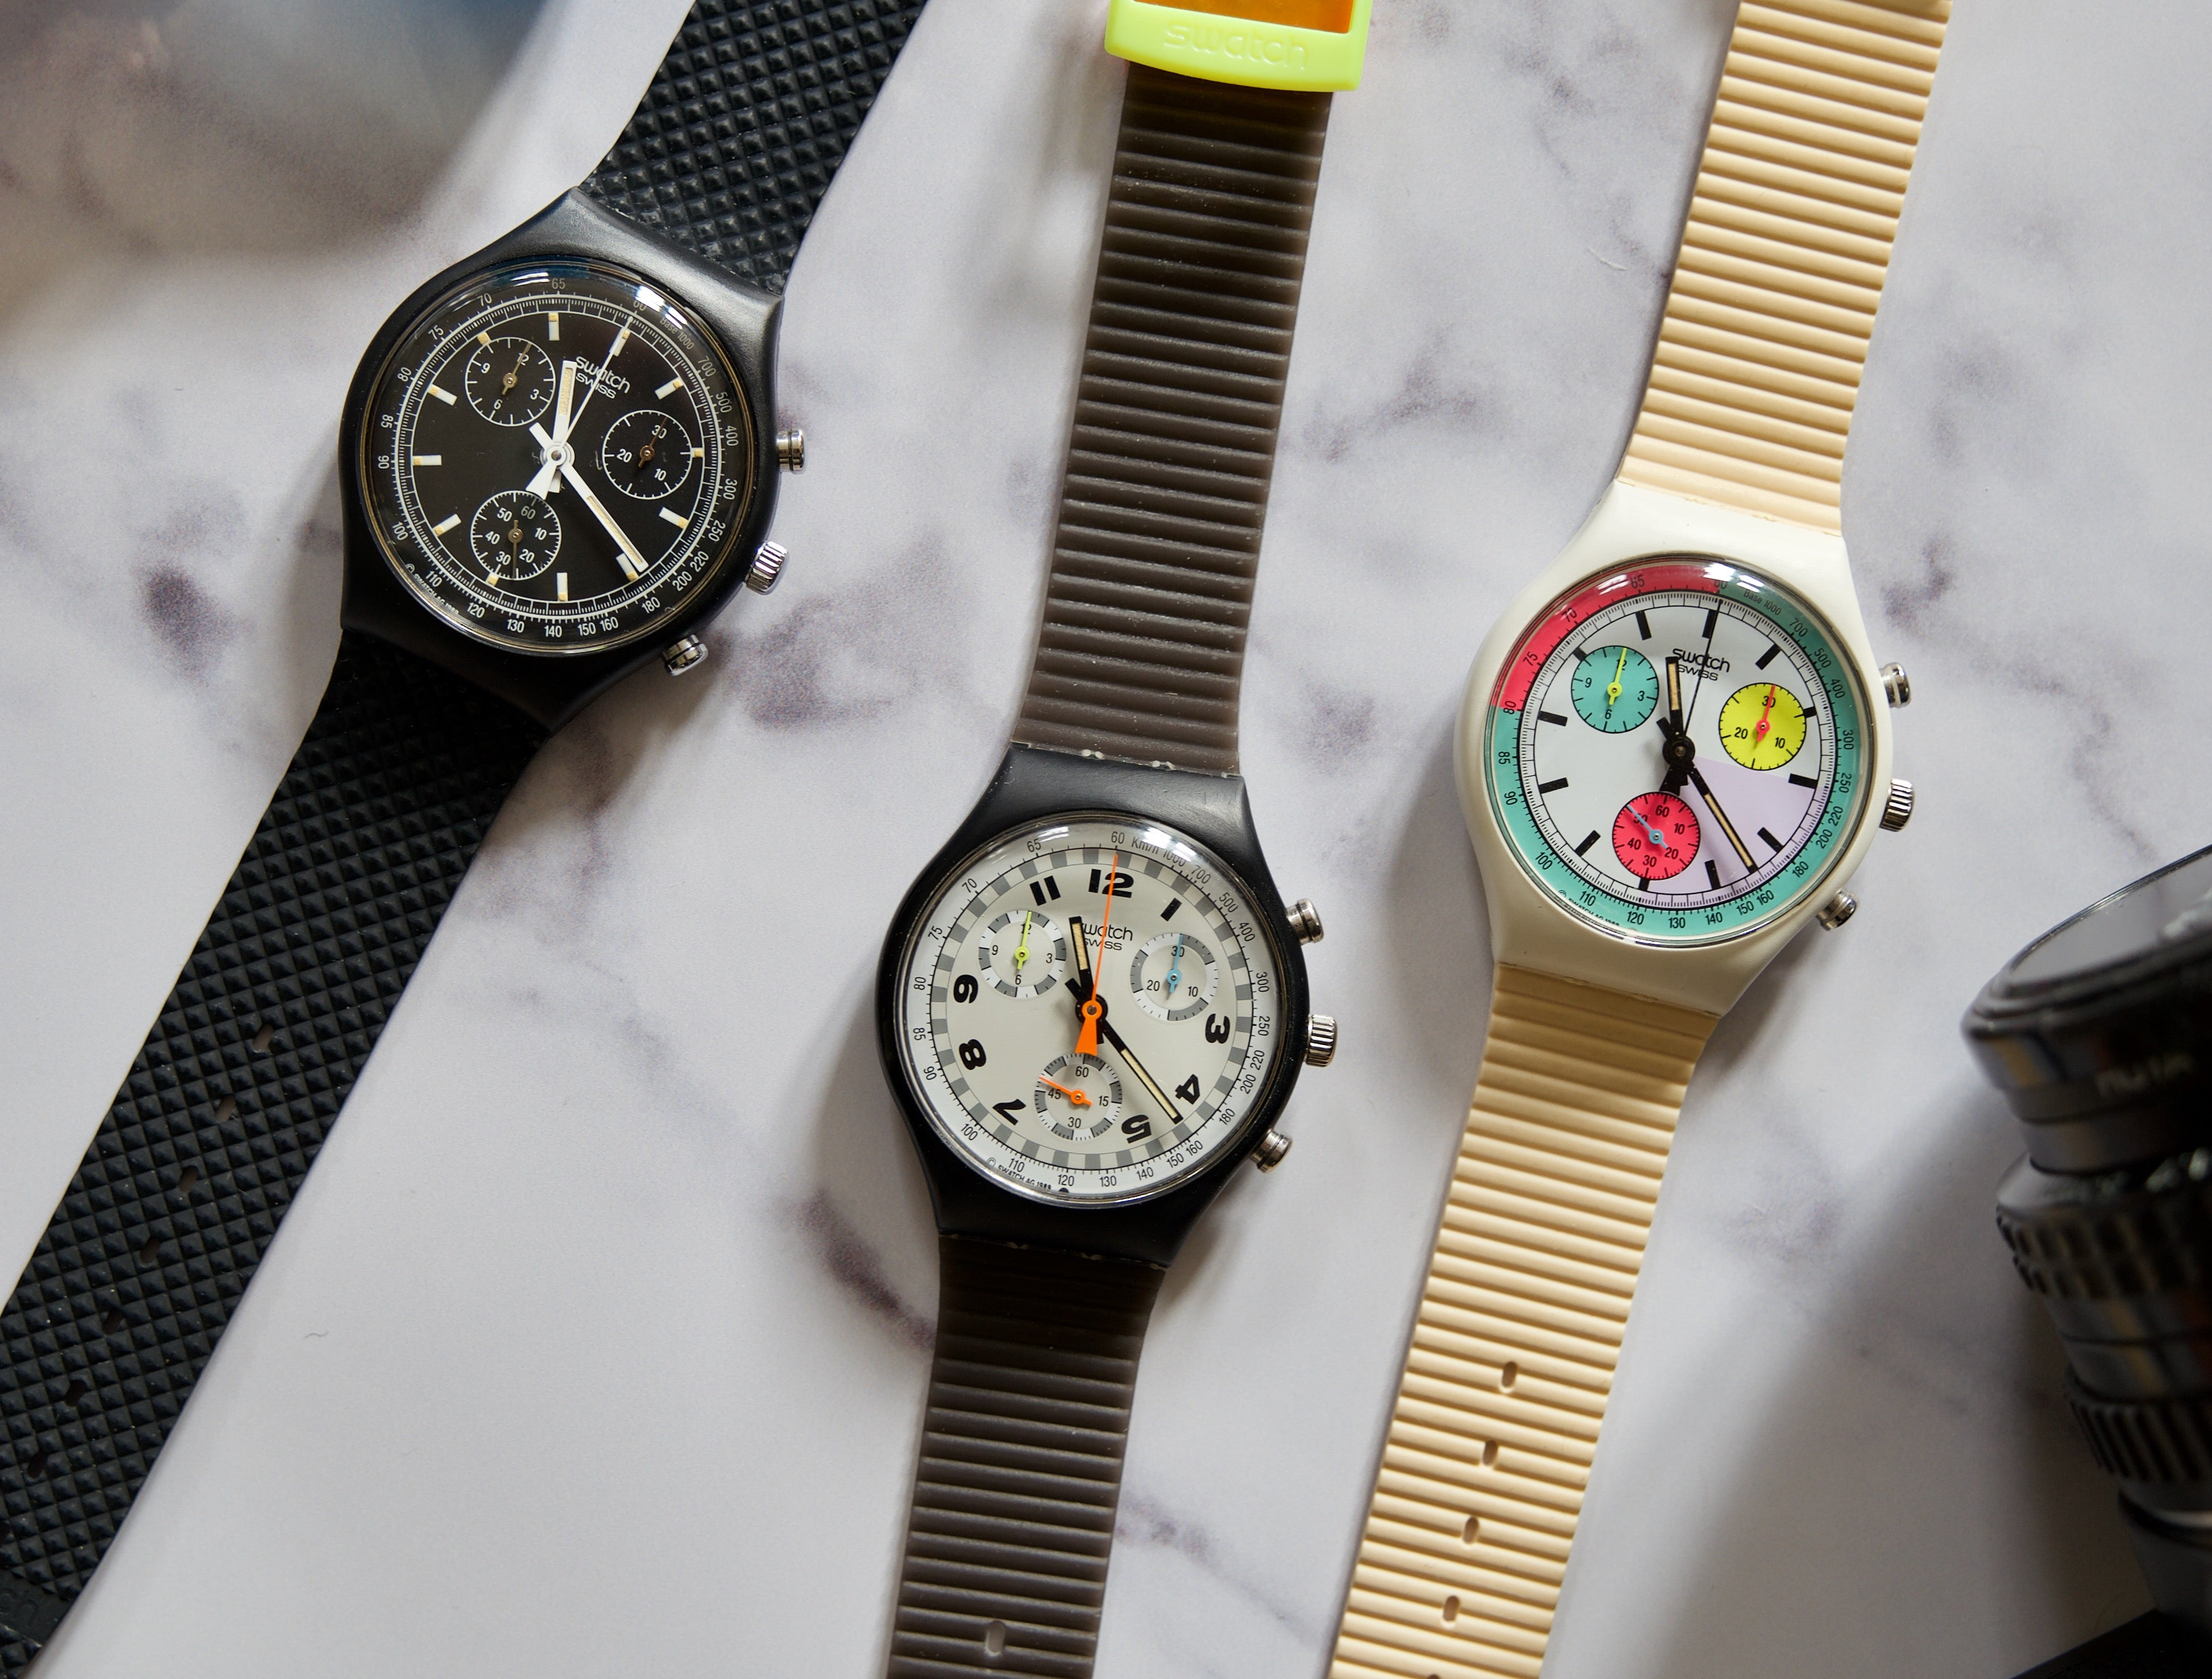 Swatch chronographs shot by Justin Hast for A Collected Man London